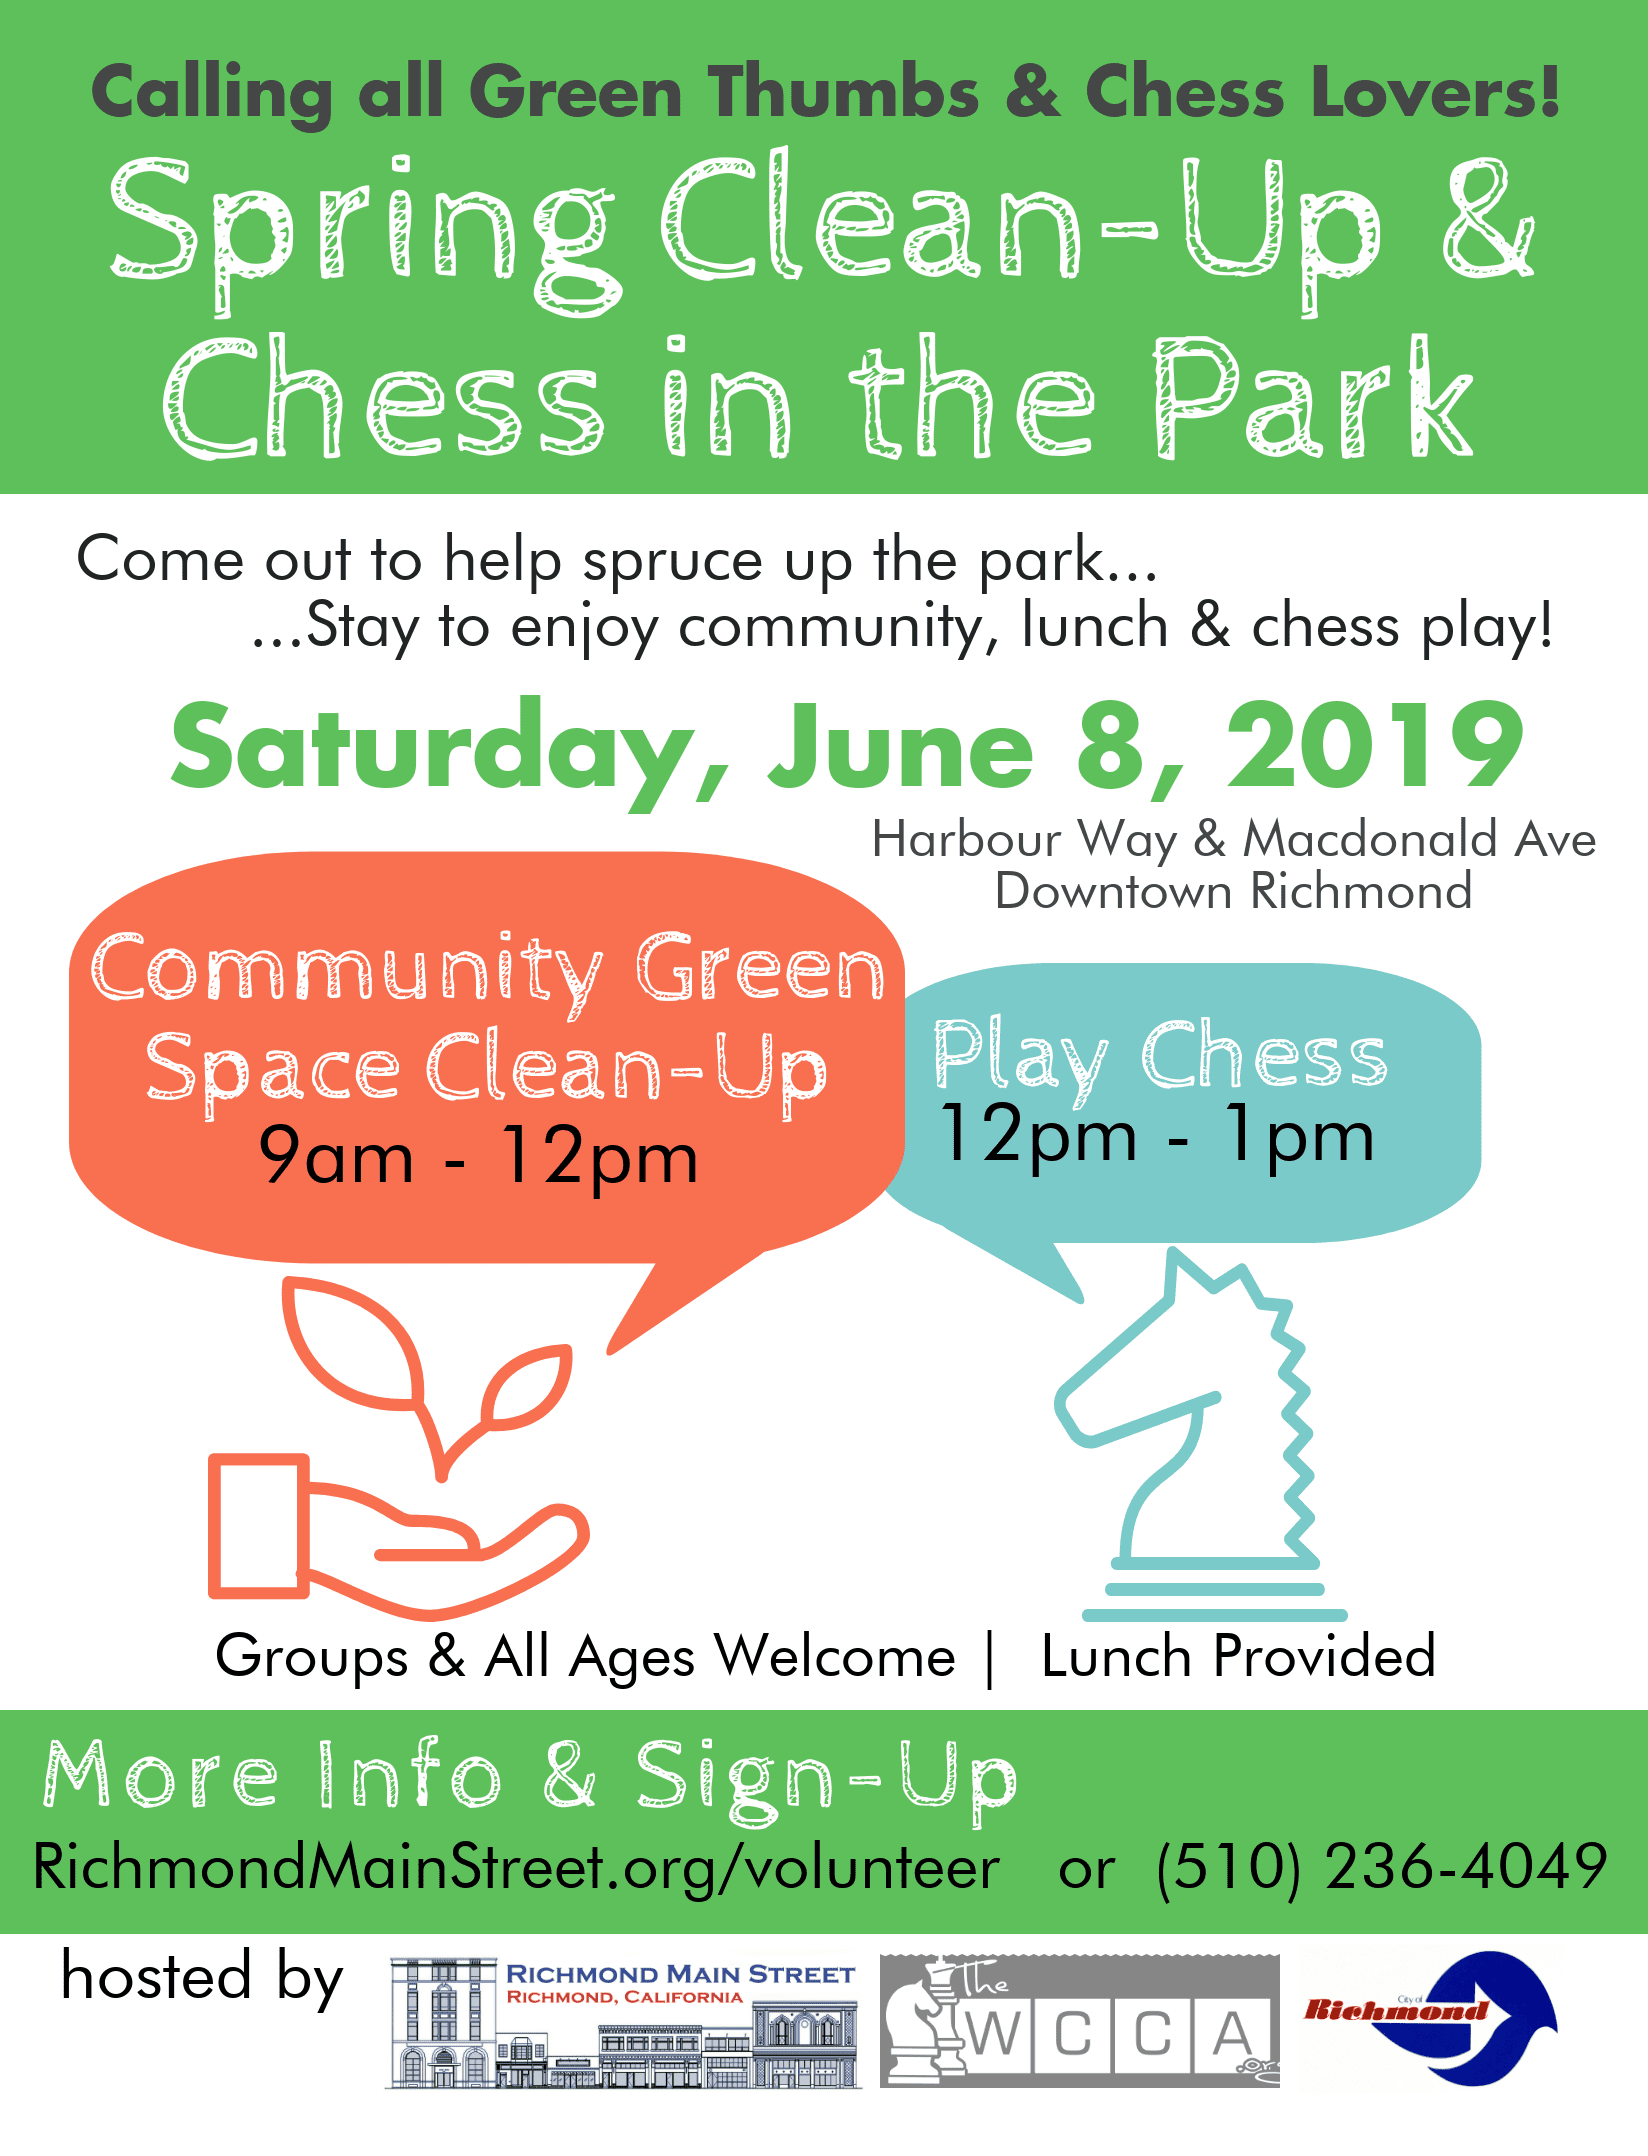 Media Alert: 3rd Annual Spring Clean-Up & Chess in the Park